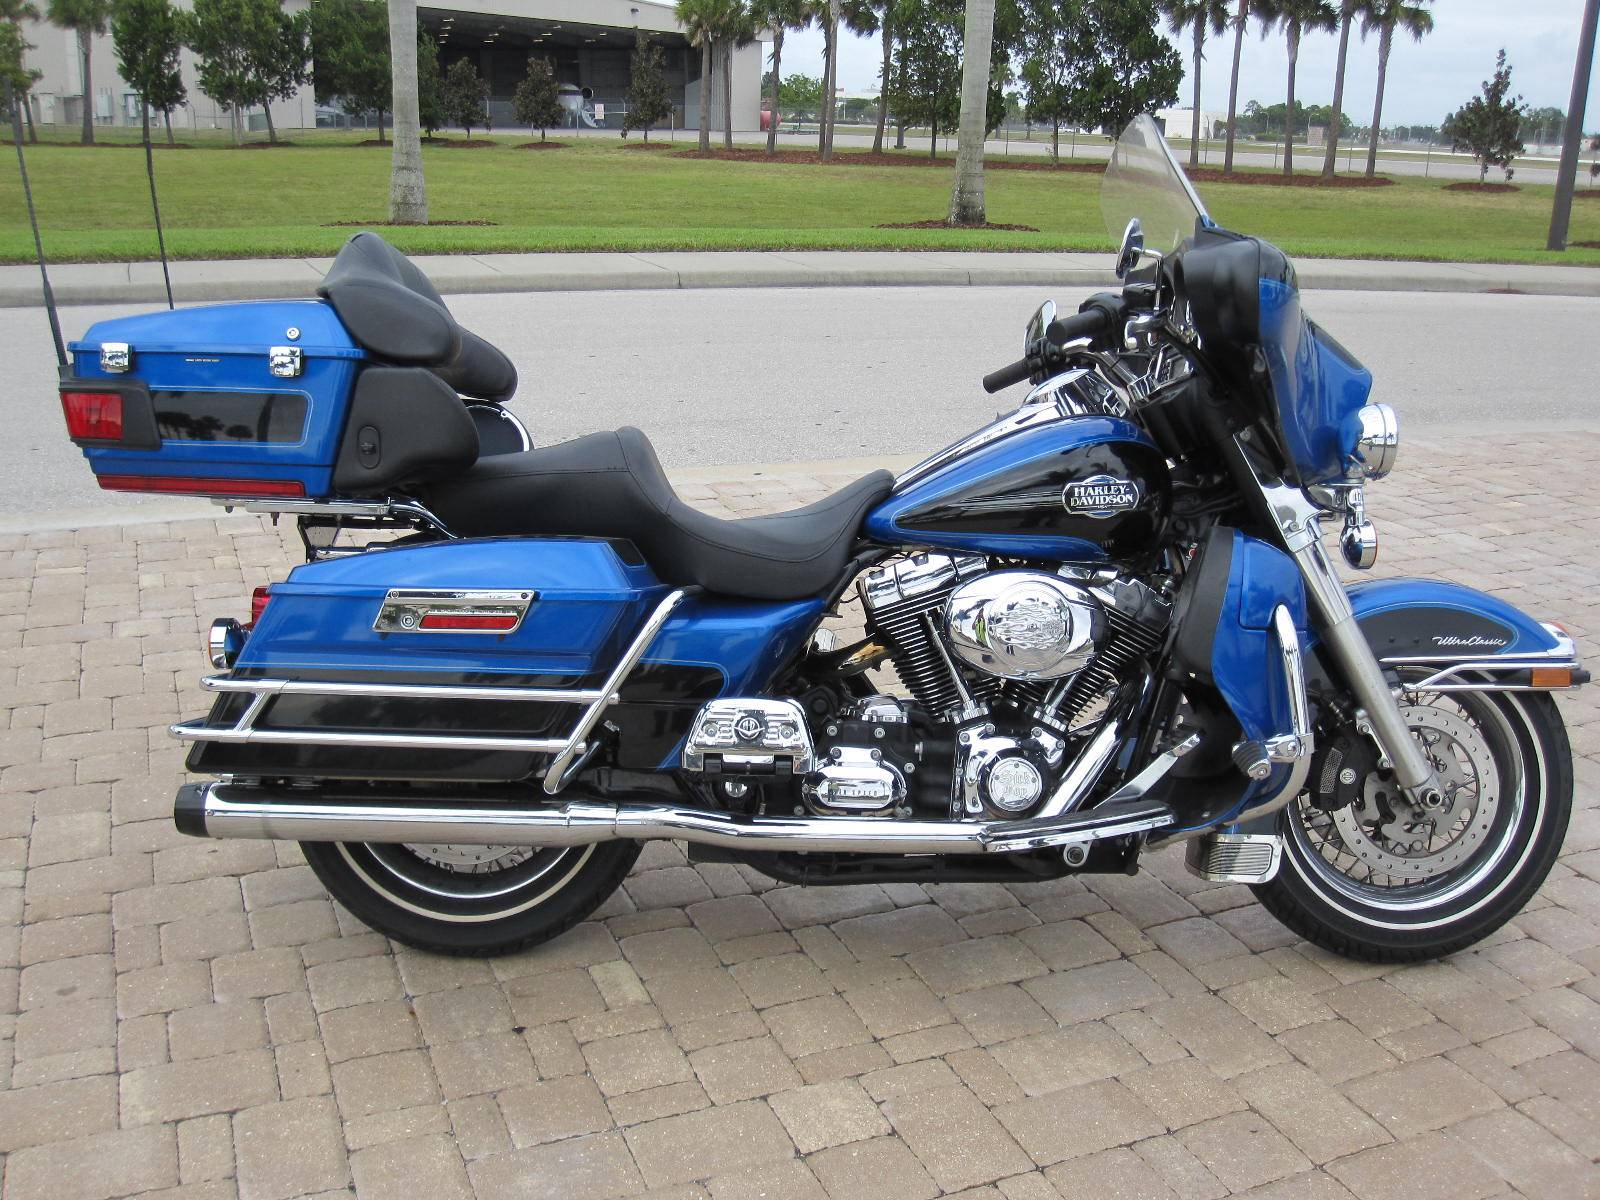 Used 2008 Harley Davidson Ultra Classic Electra Glide Motorcycles